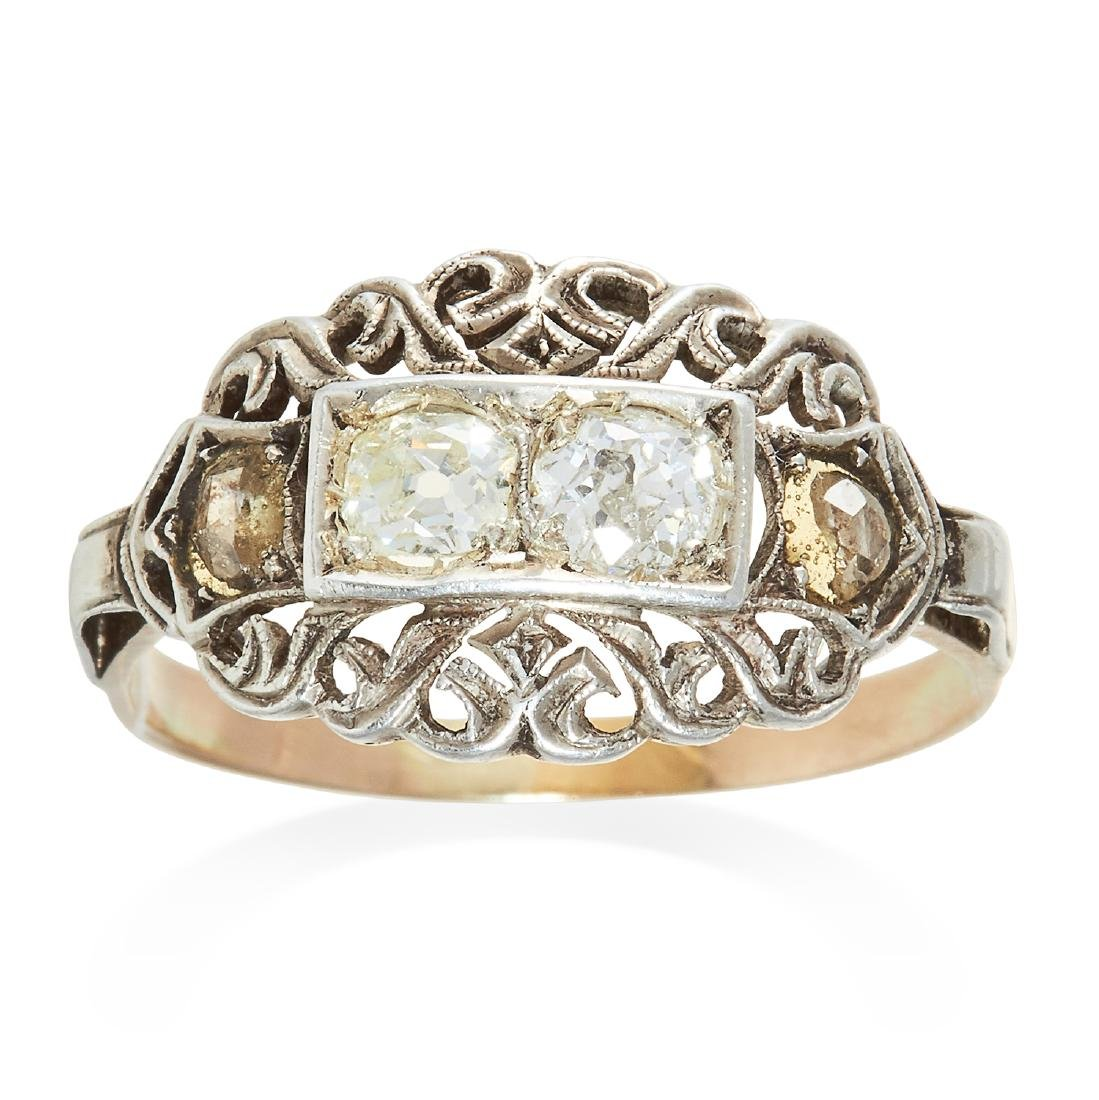 AN ANTIQUE DIAMOND RING in platinum or white gold, set